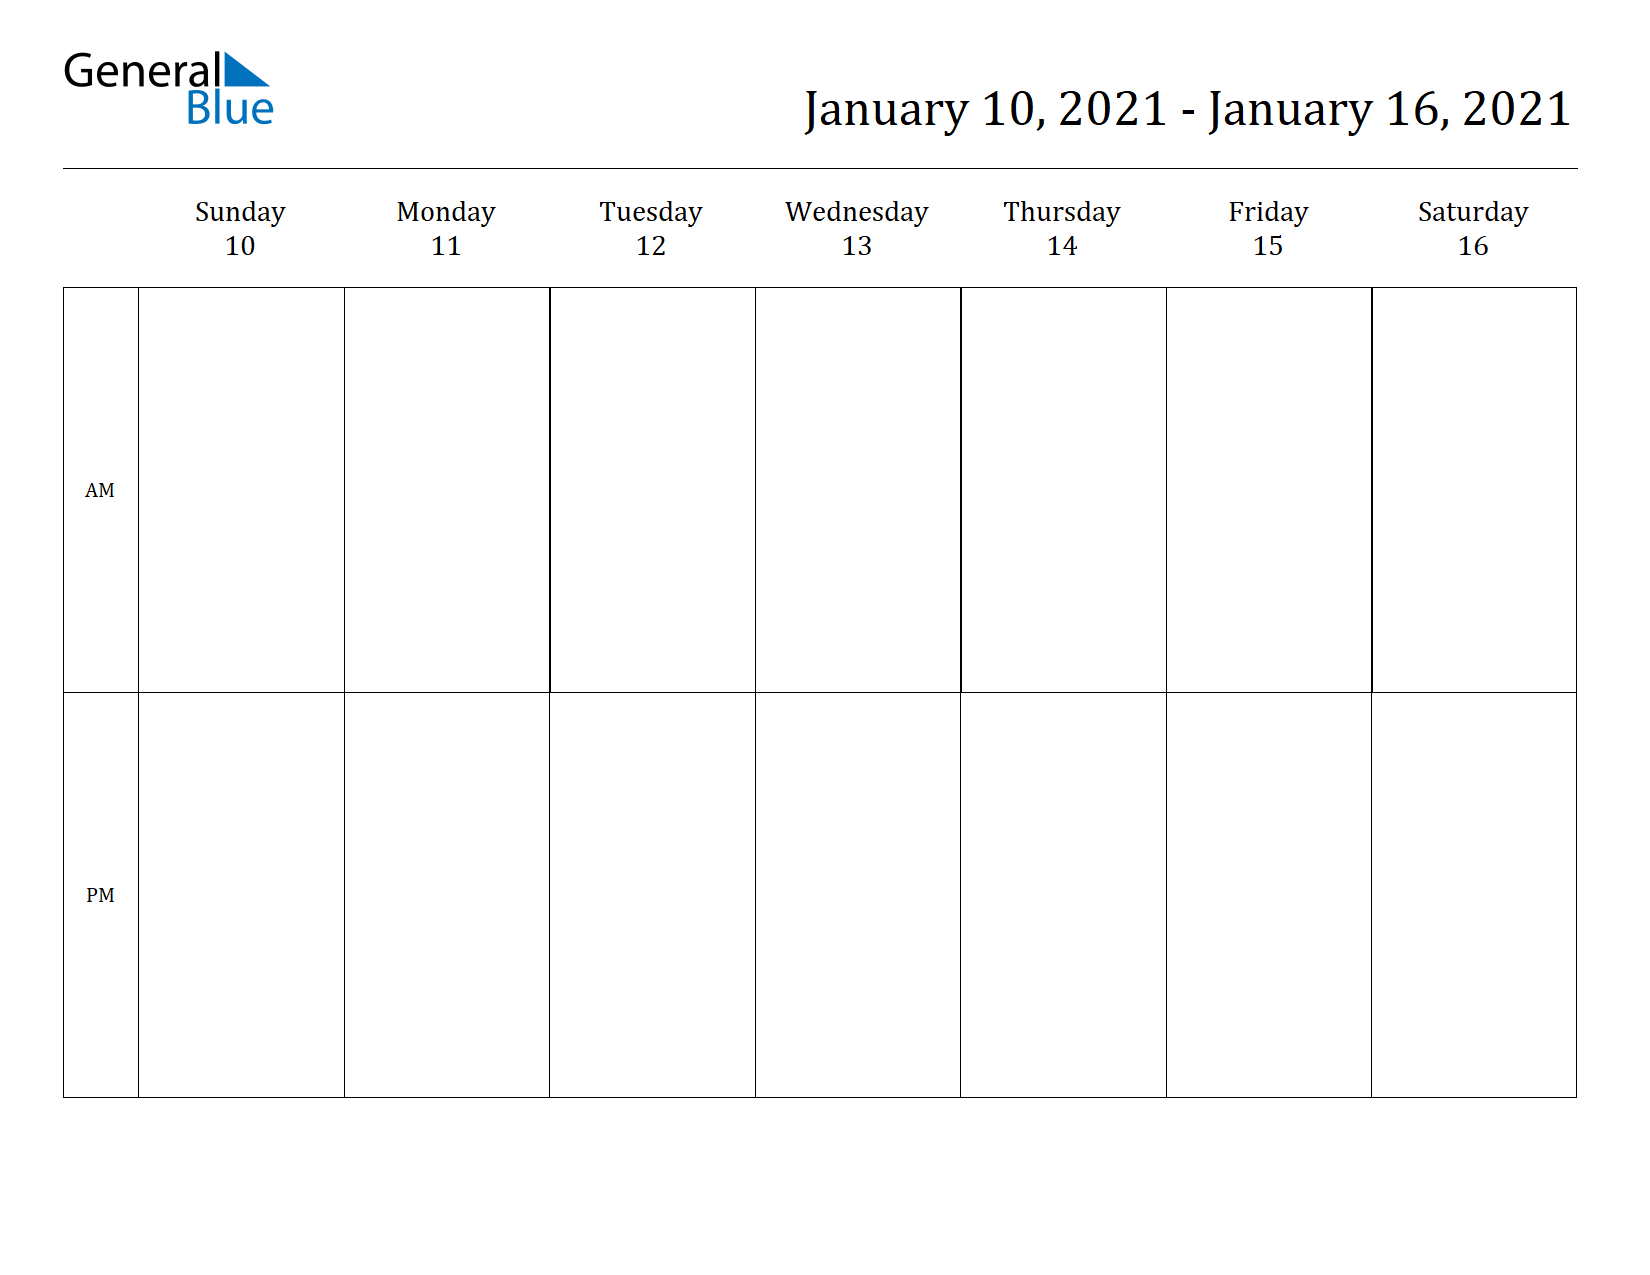 Weekly Calendar for Jan 10, 2021 to Jan 16, 2021